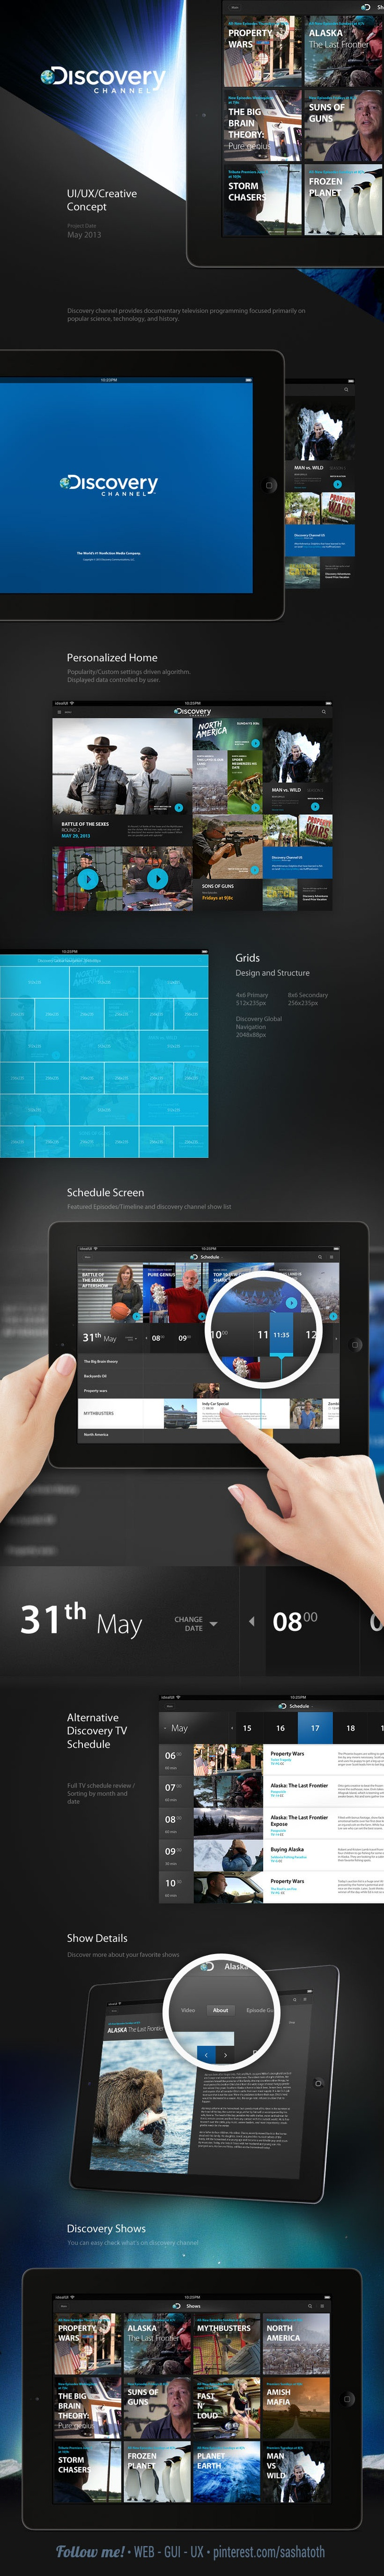 Discovery Channel iPad Application